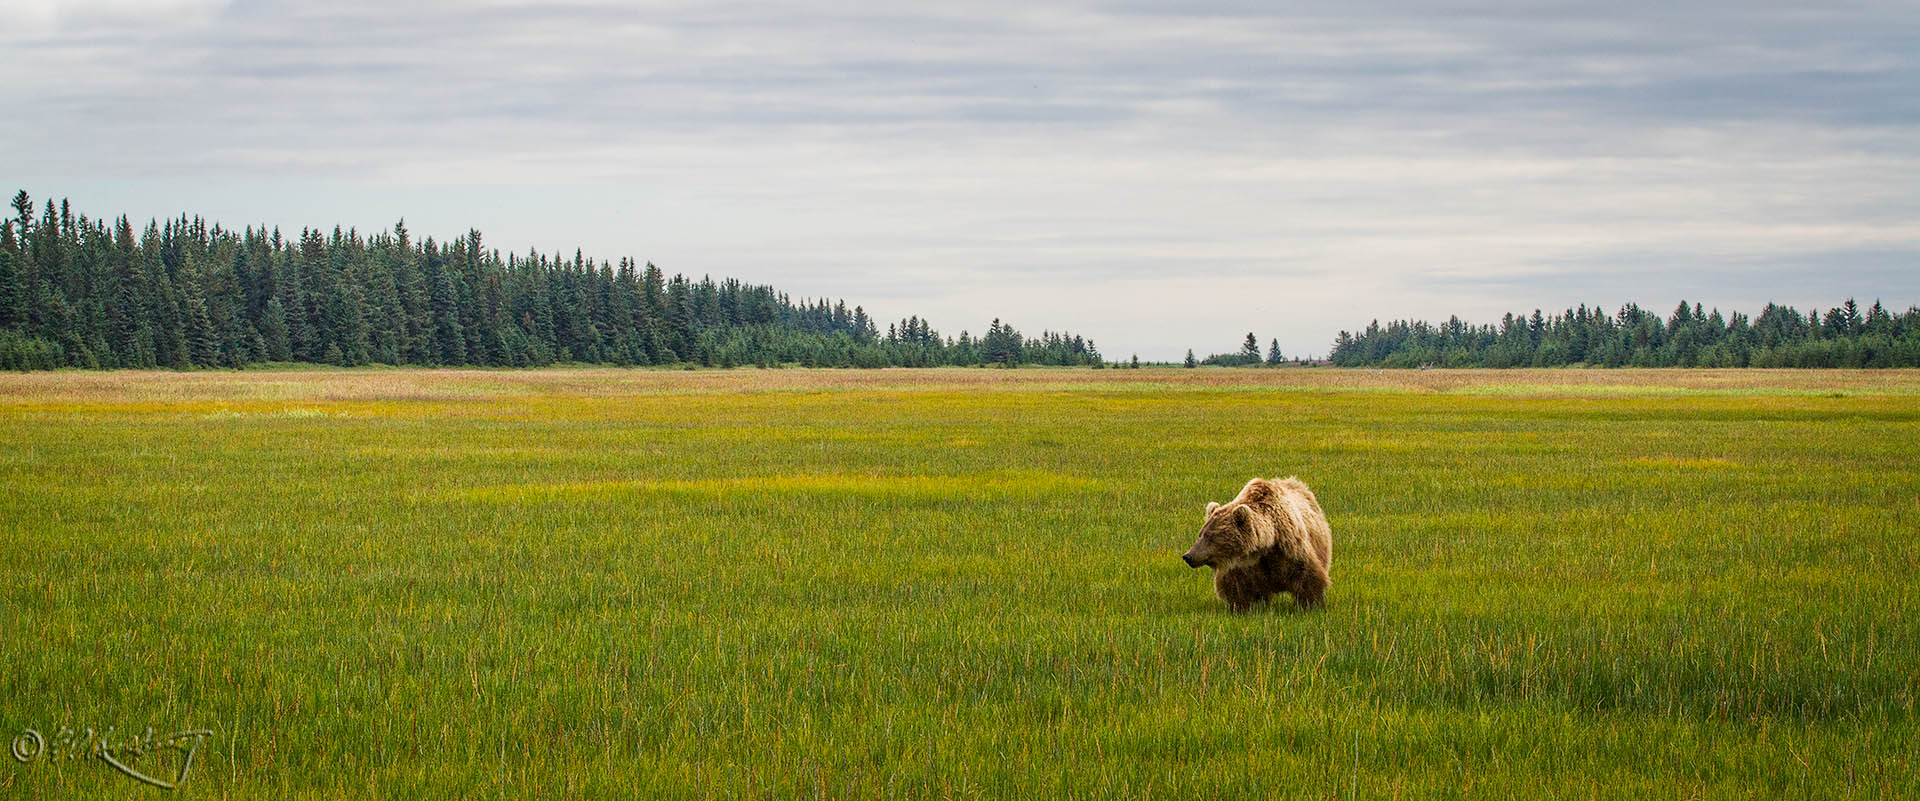 Grizzly_Bear_on_sedge_field